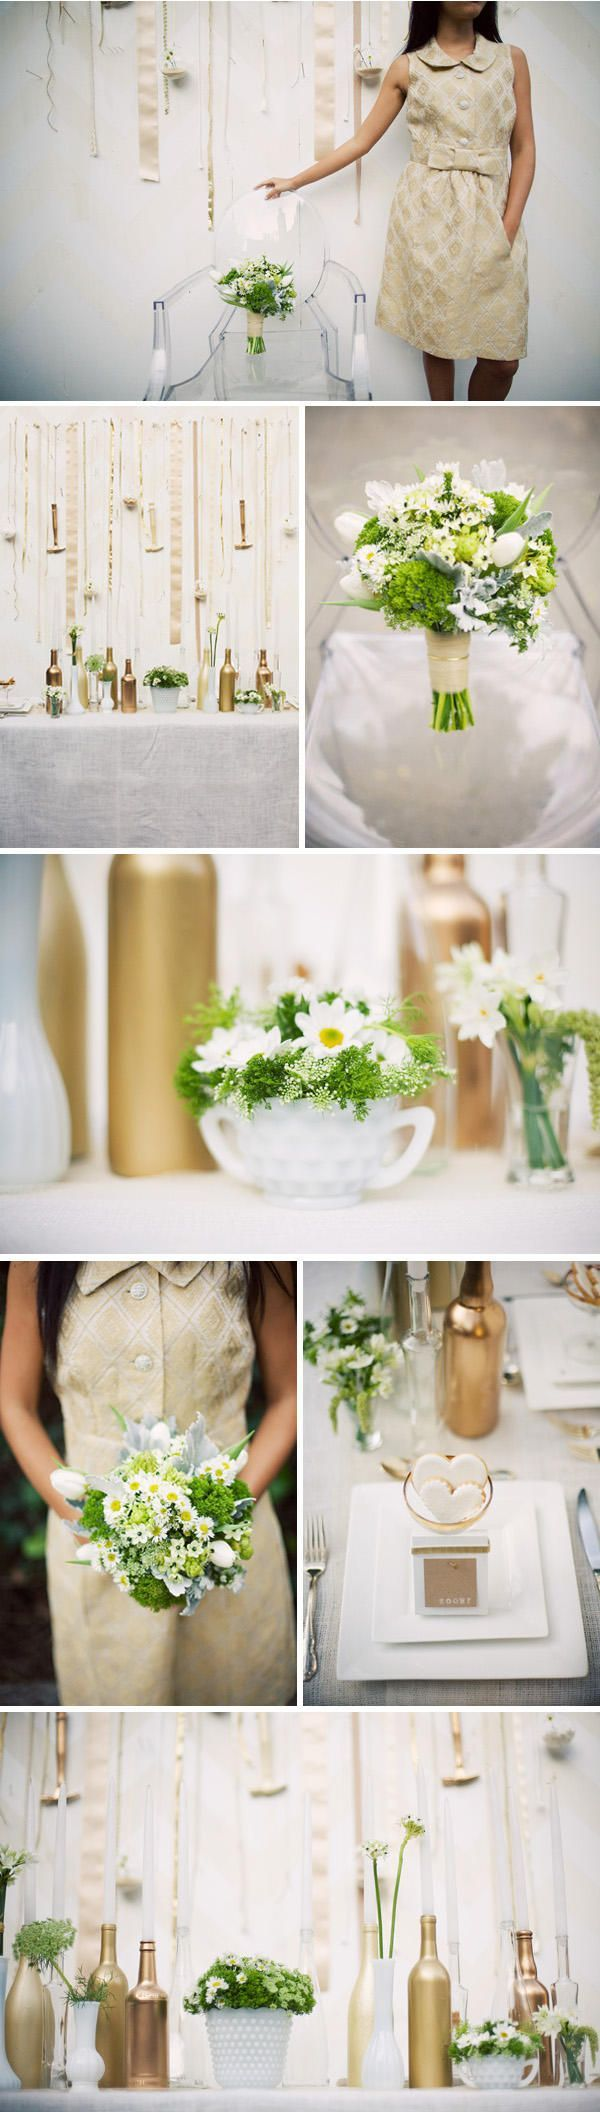 Green and White Wedding Centerpieces Decor | Wedding-Decorations